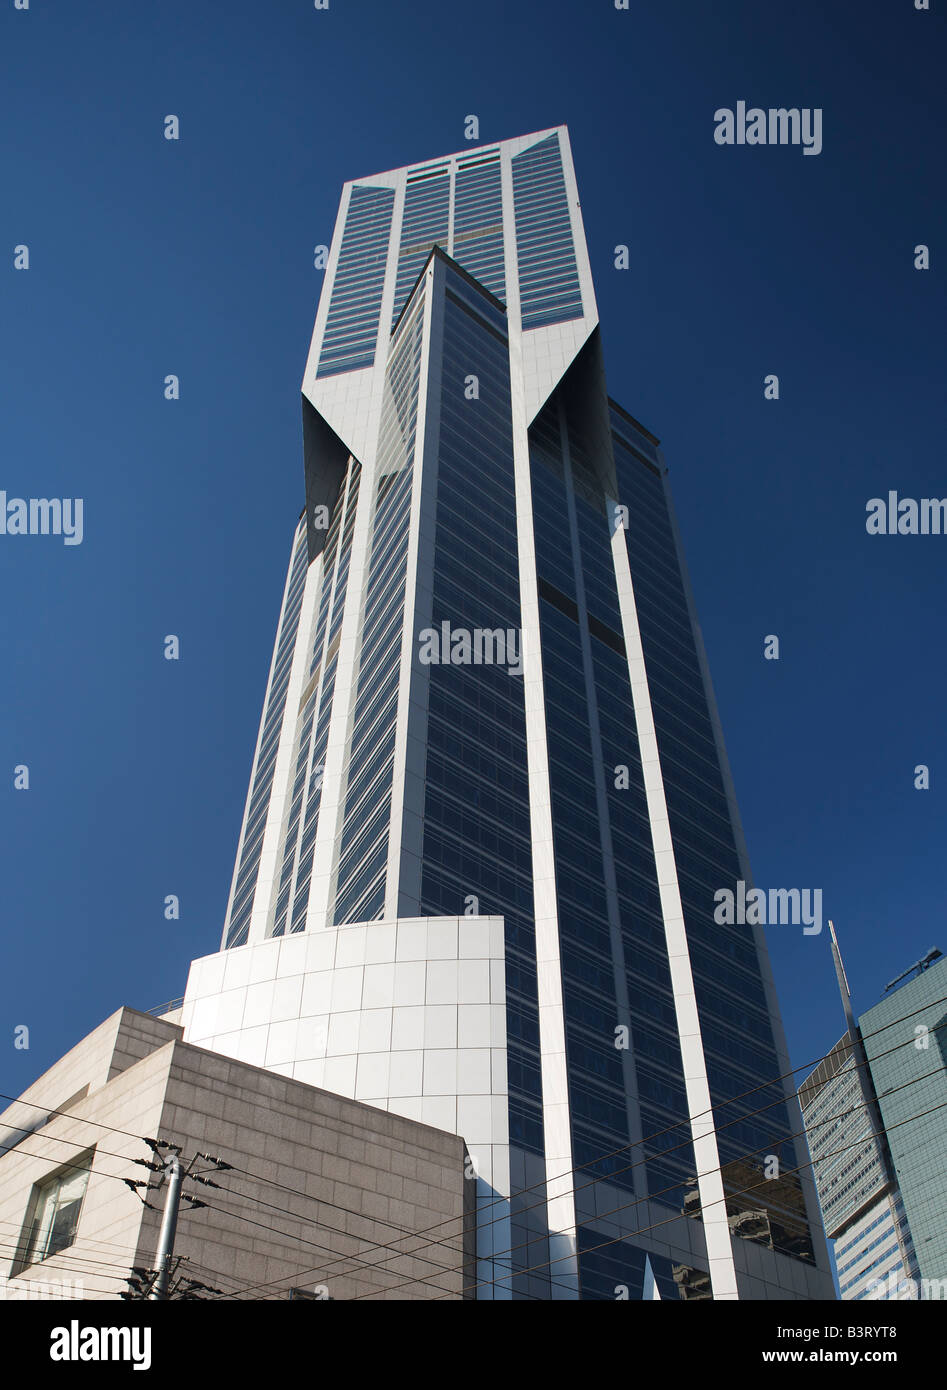 J C Mariott Hotel People's Square Shanghai China - Stock Image